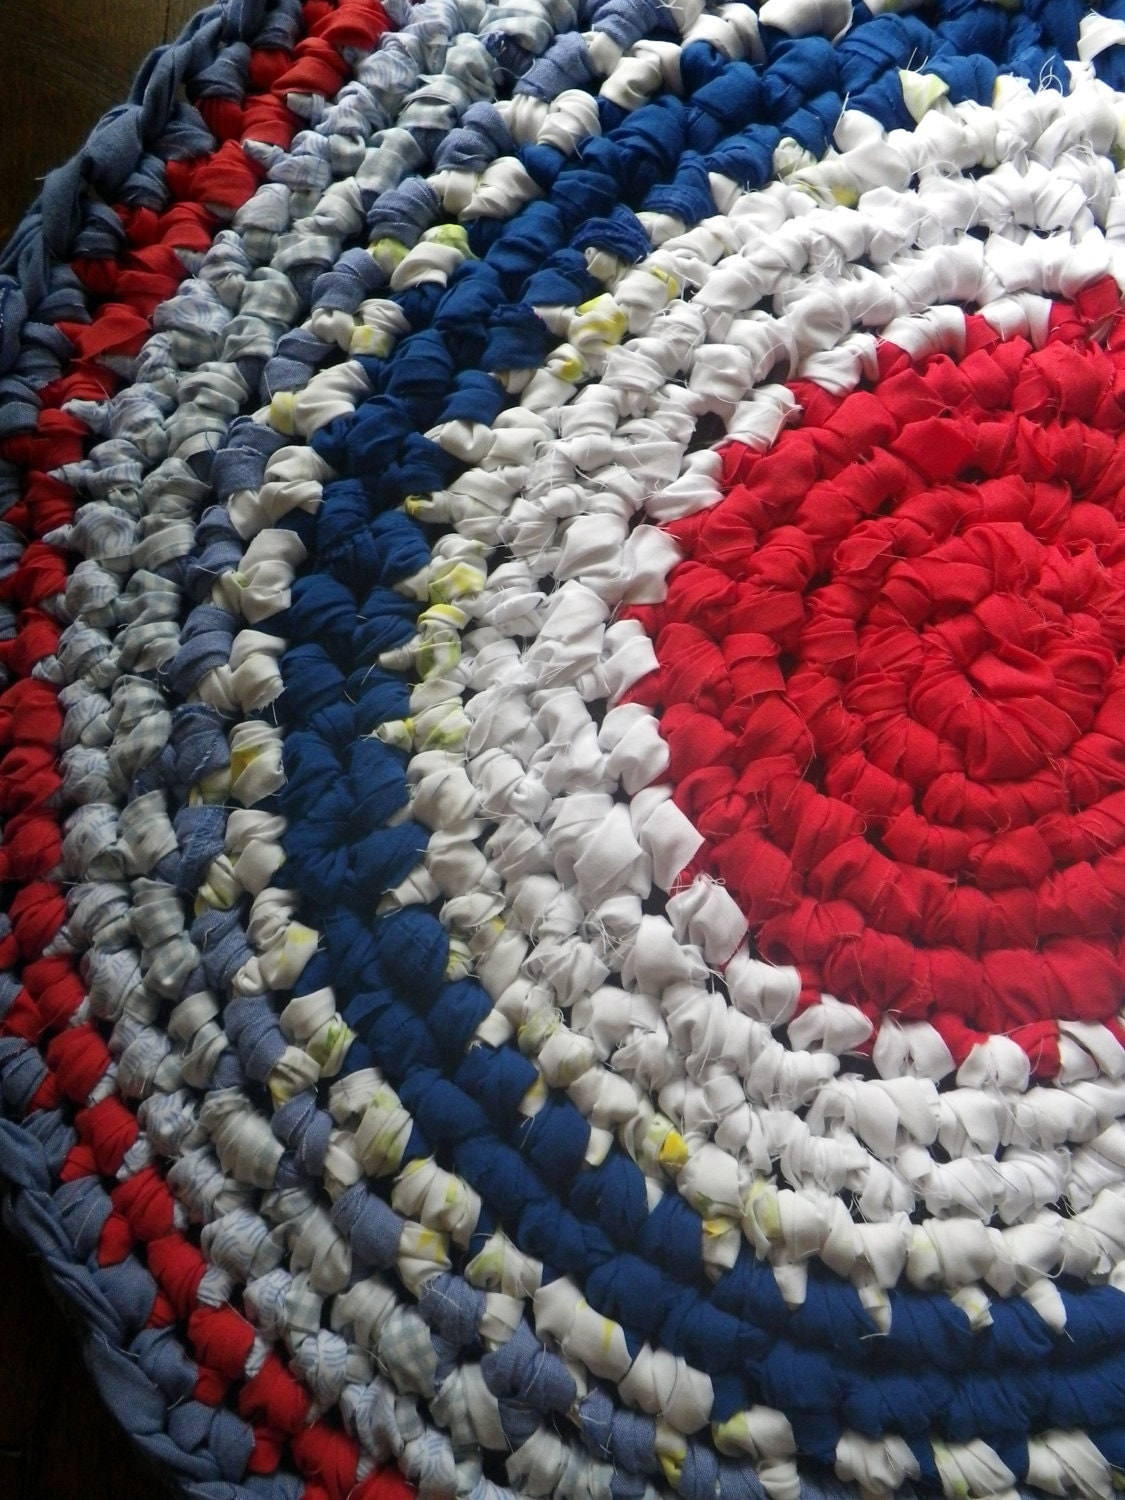 Red White & Blue Cottage Crocheted Rag Rug made from 100% Repurposed Cotton